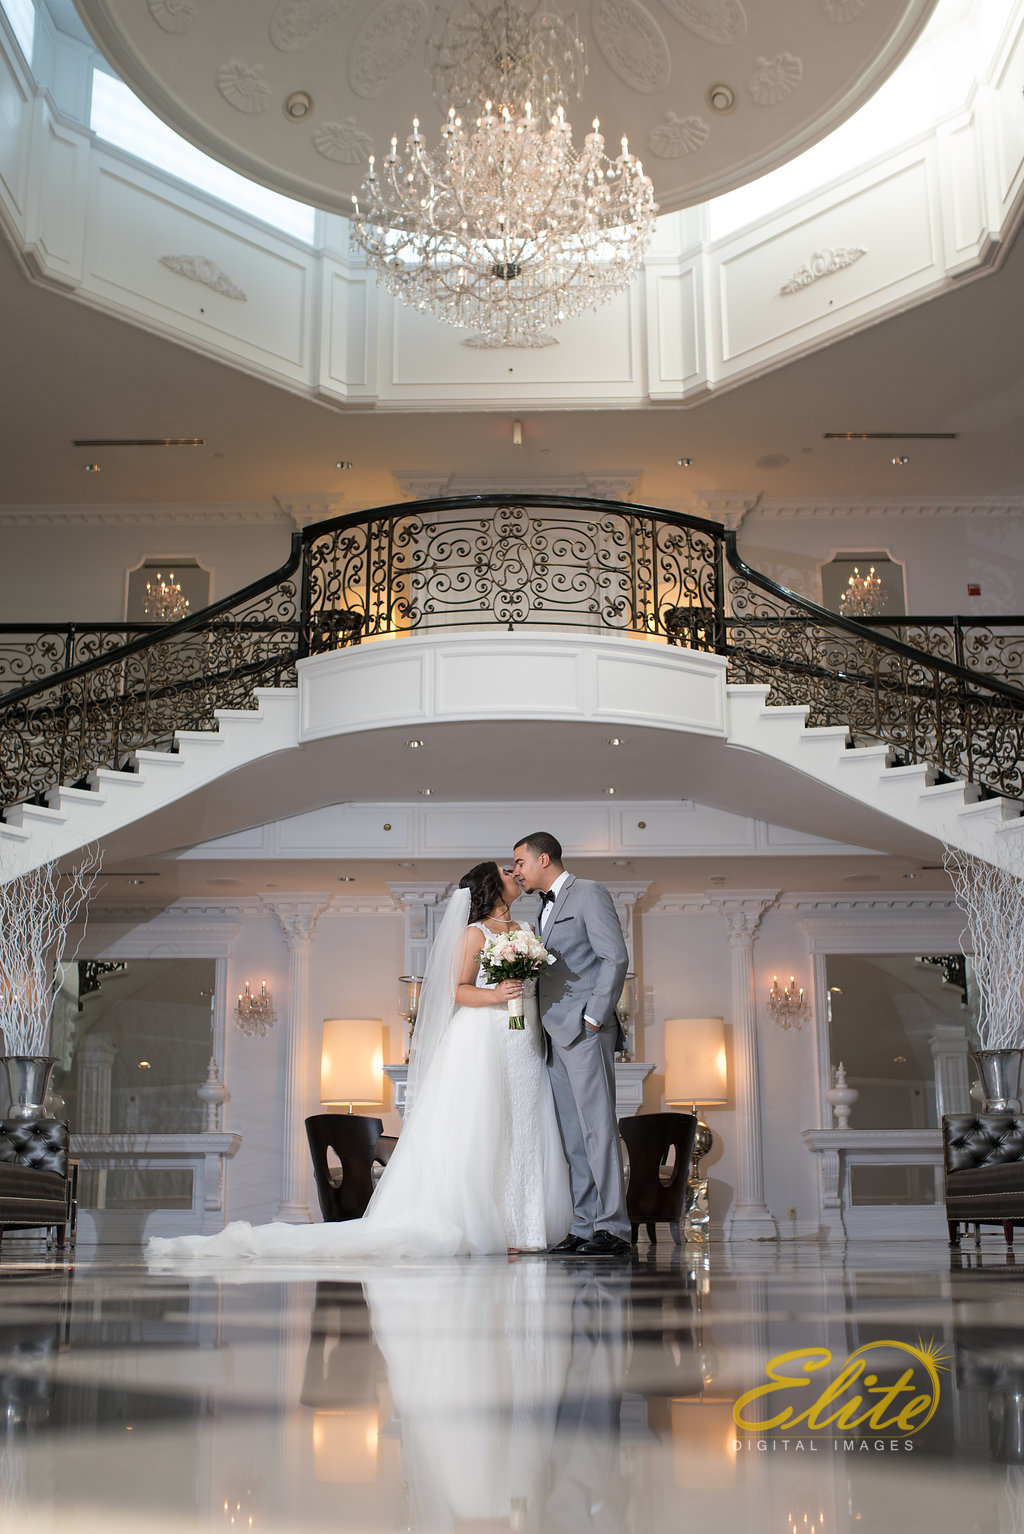 Elite Entertainment_ NJWedding_ EliteDigitalImages_Addison Park_Jayde and Trevor (14)